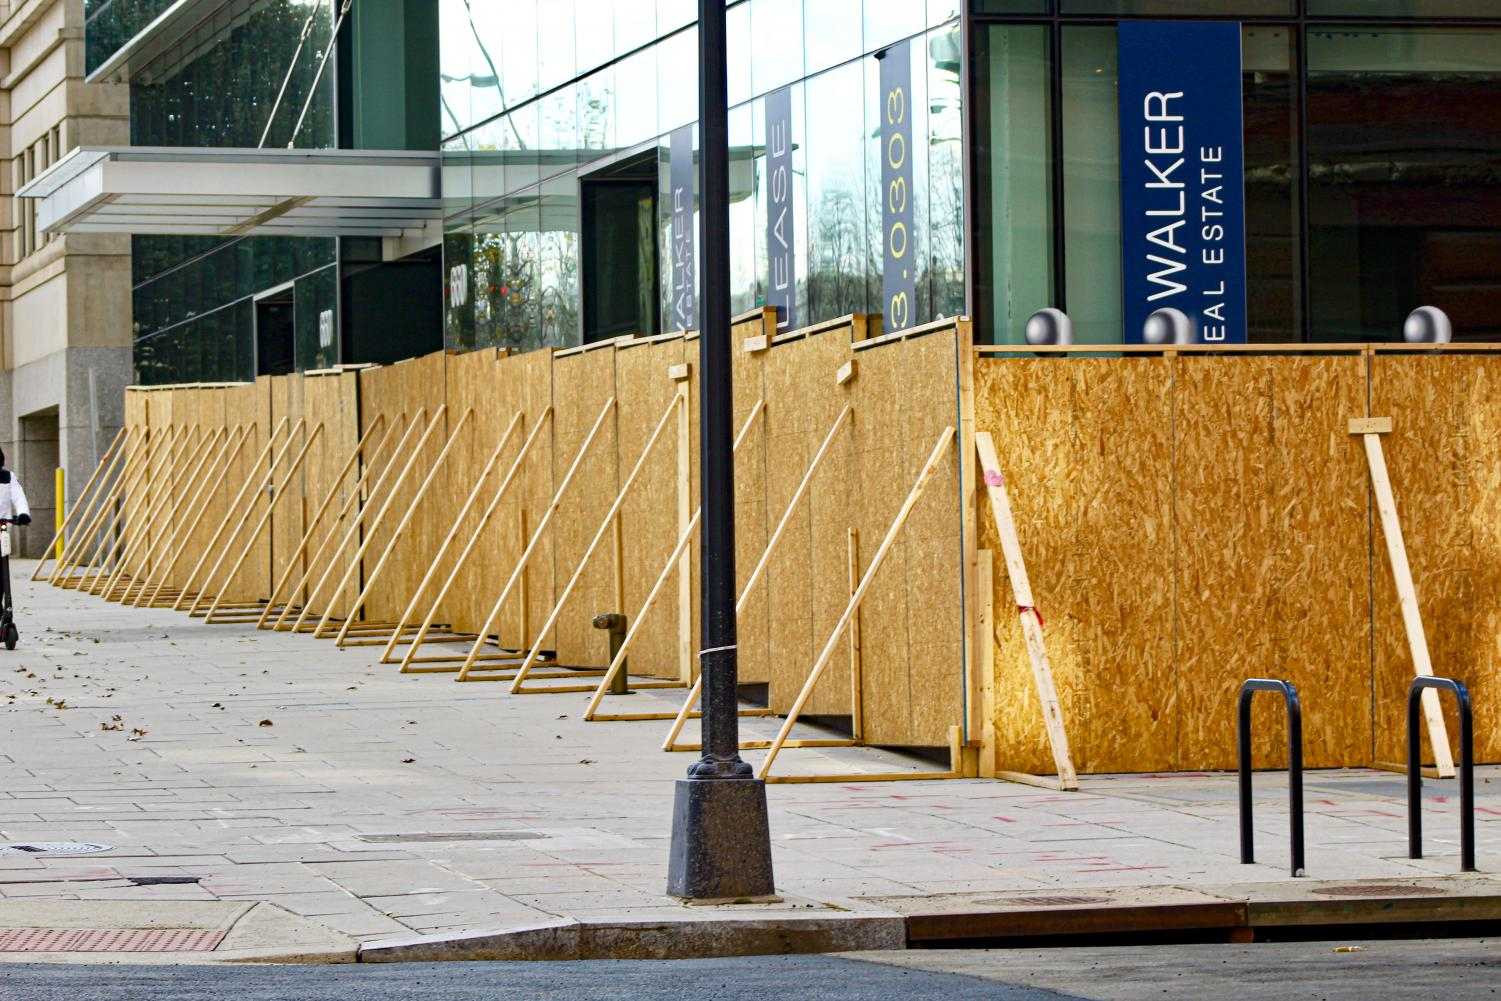 Buildings around the Capitol were boarded up before the Inauguration on Jan. 21, in Washington D.C.